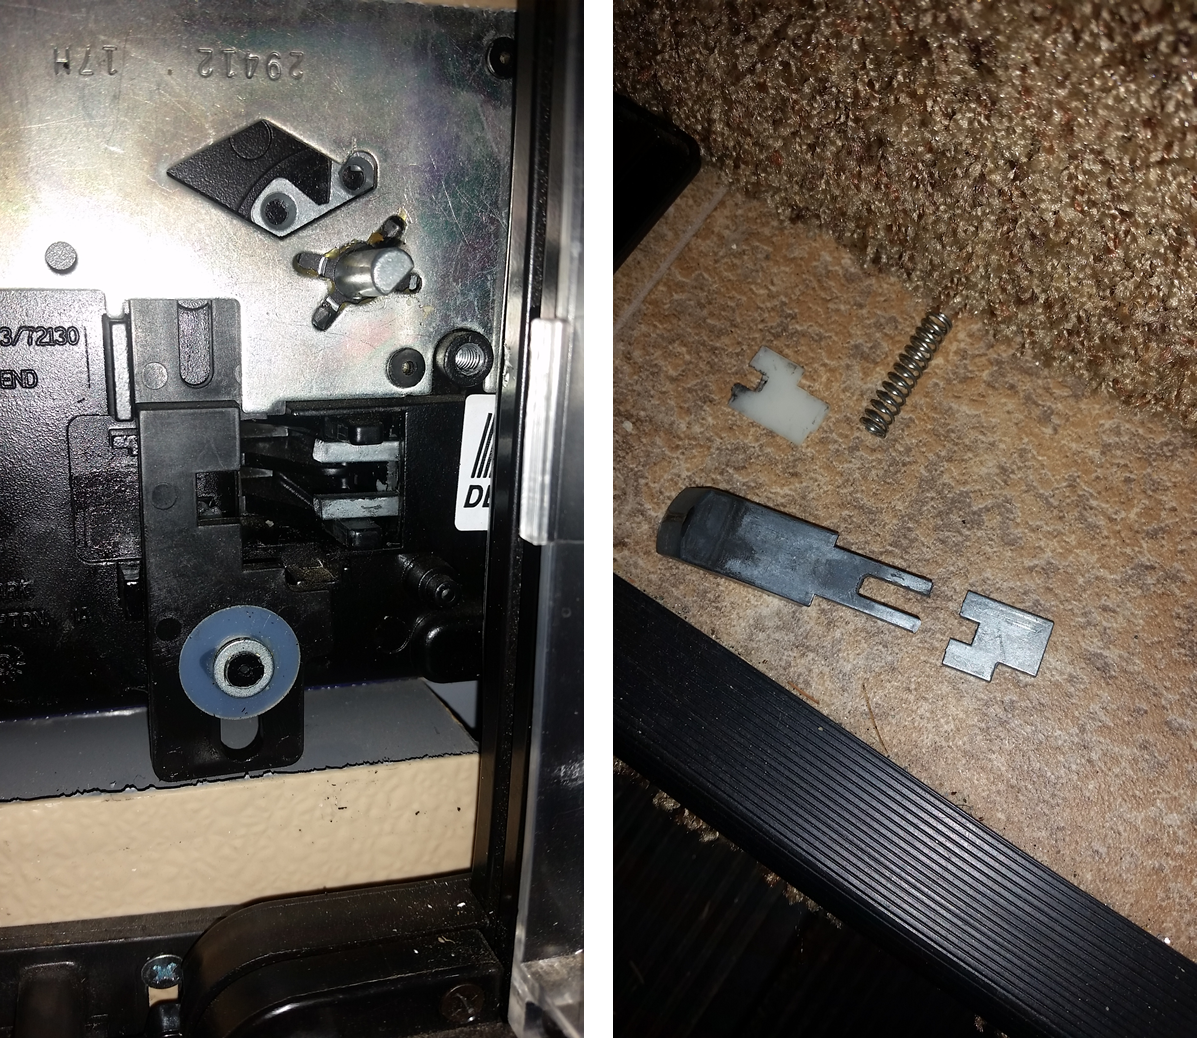 Click image for larger version  Name:Door Lock Snapped.png Views:244 Size:2.85 MB ID:5734